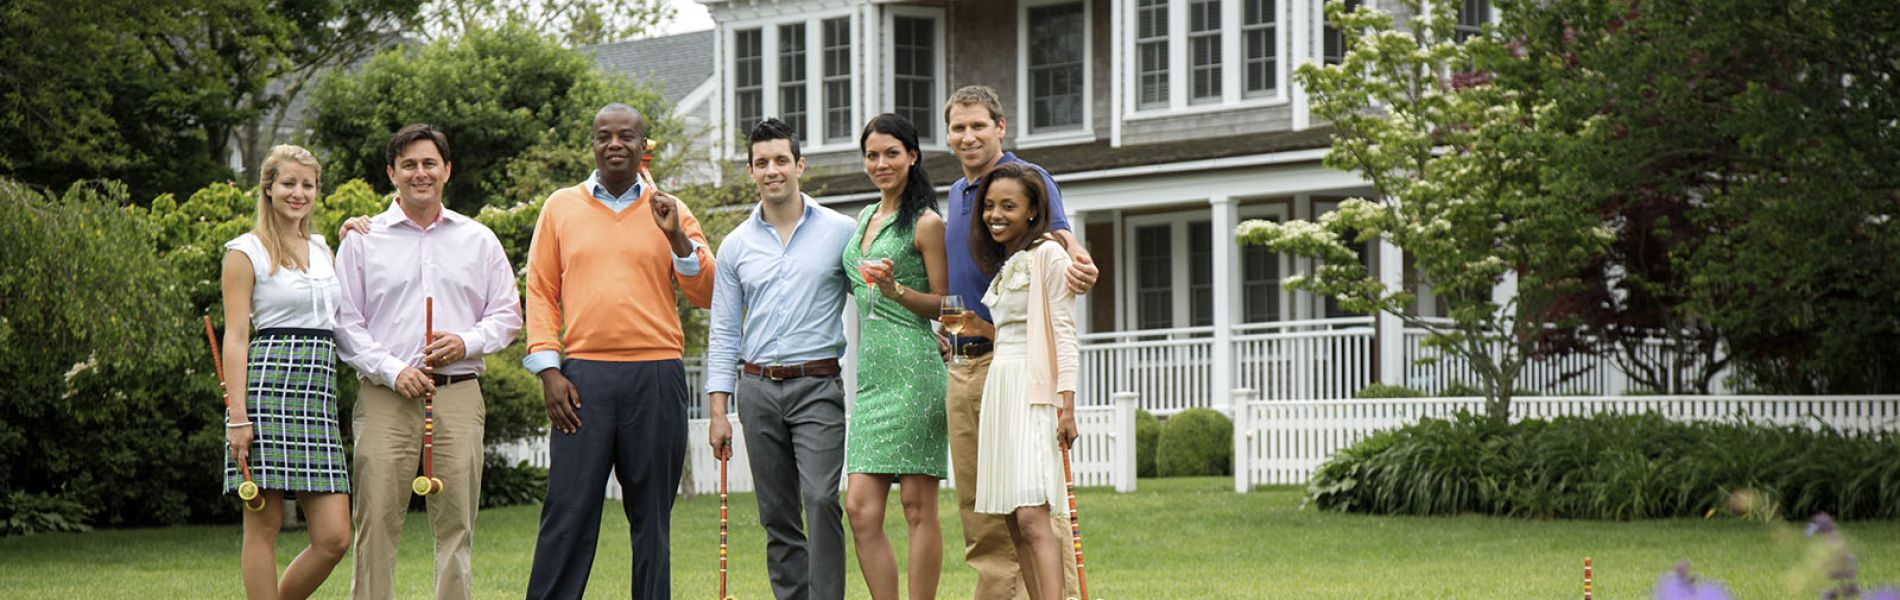 A Group Of People Standing In A Yard